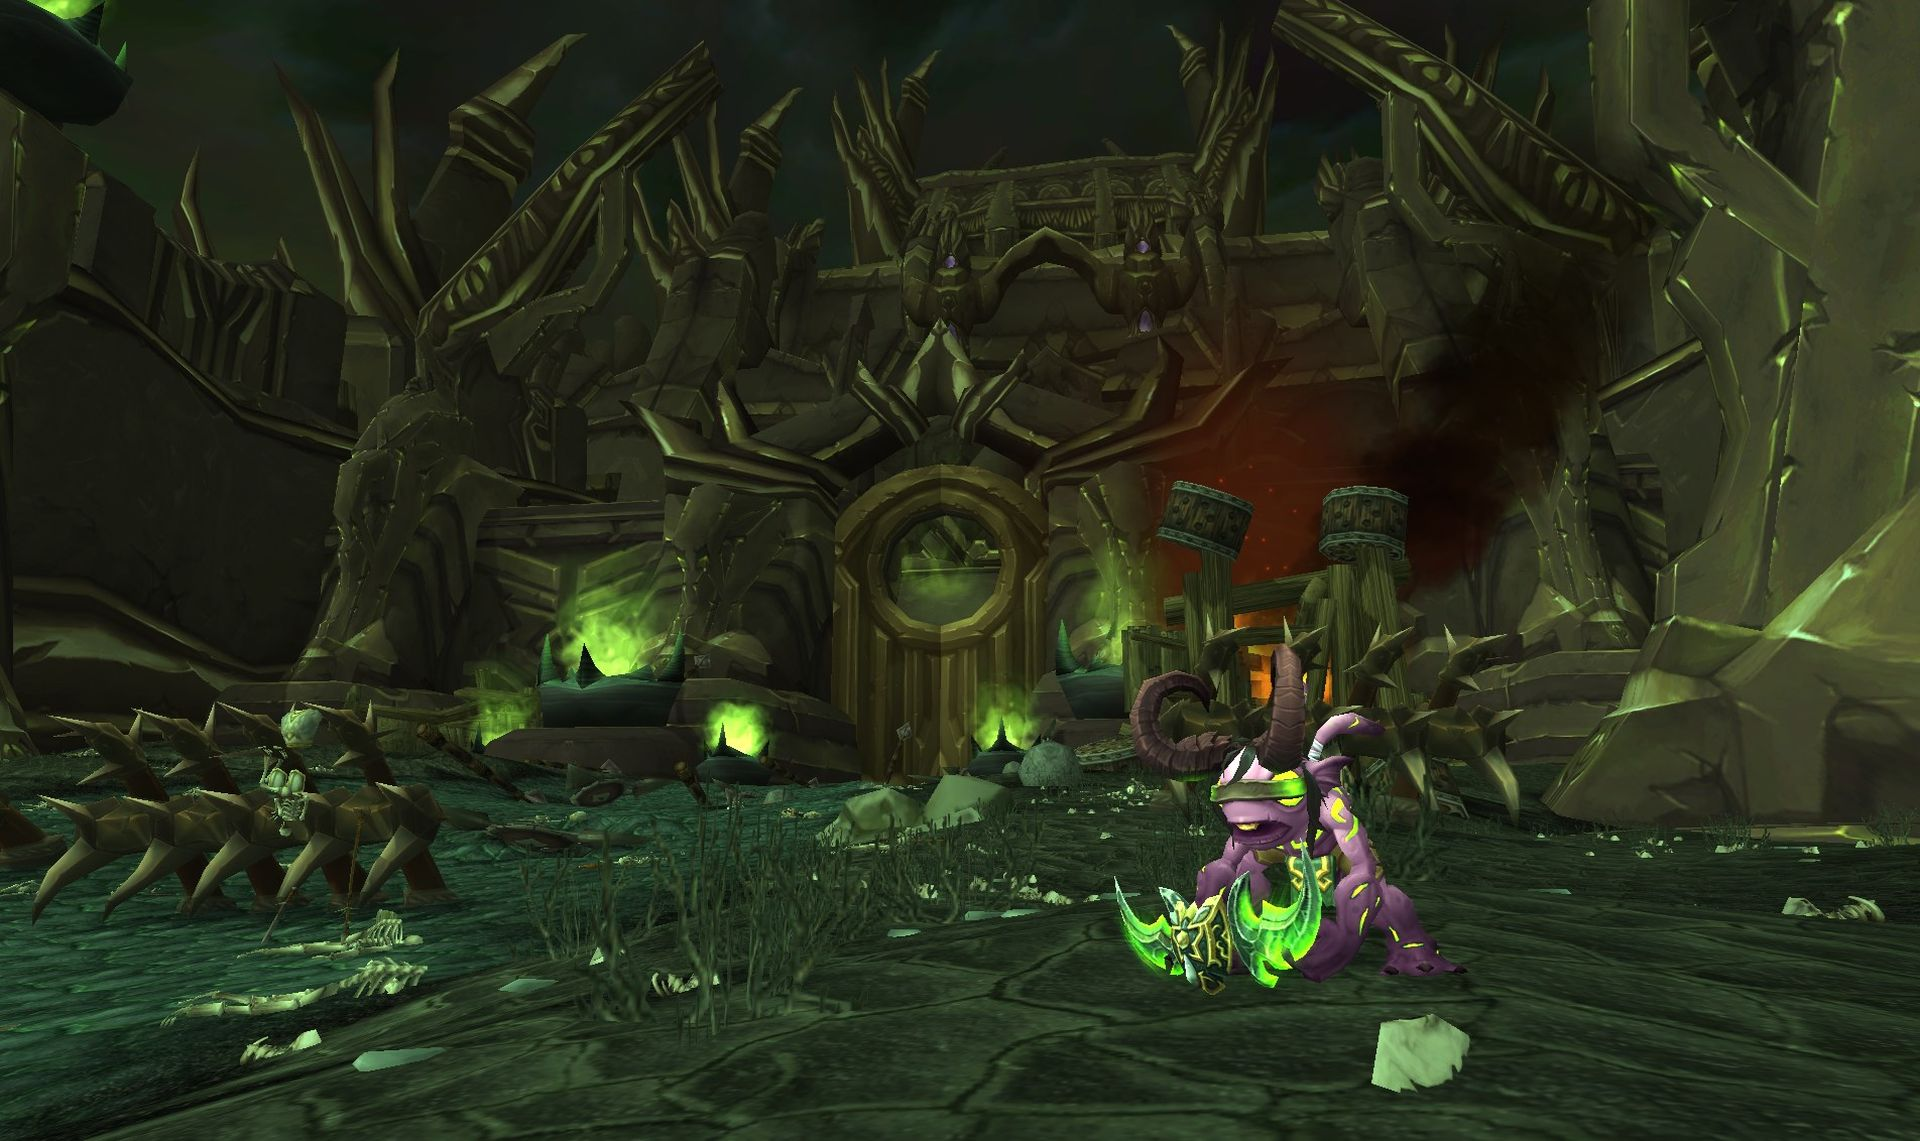 world-of-warcraft-screenshot-25